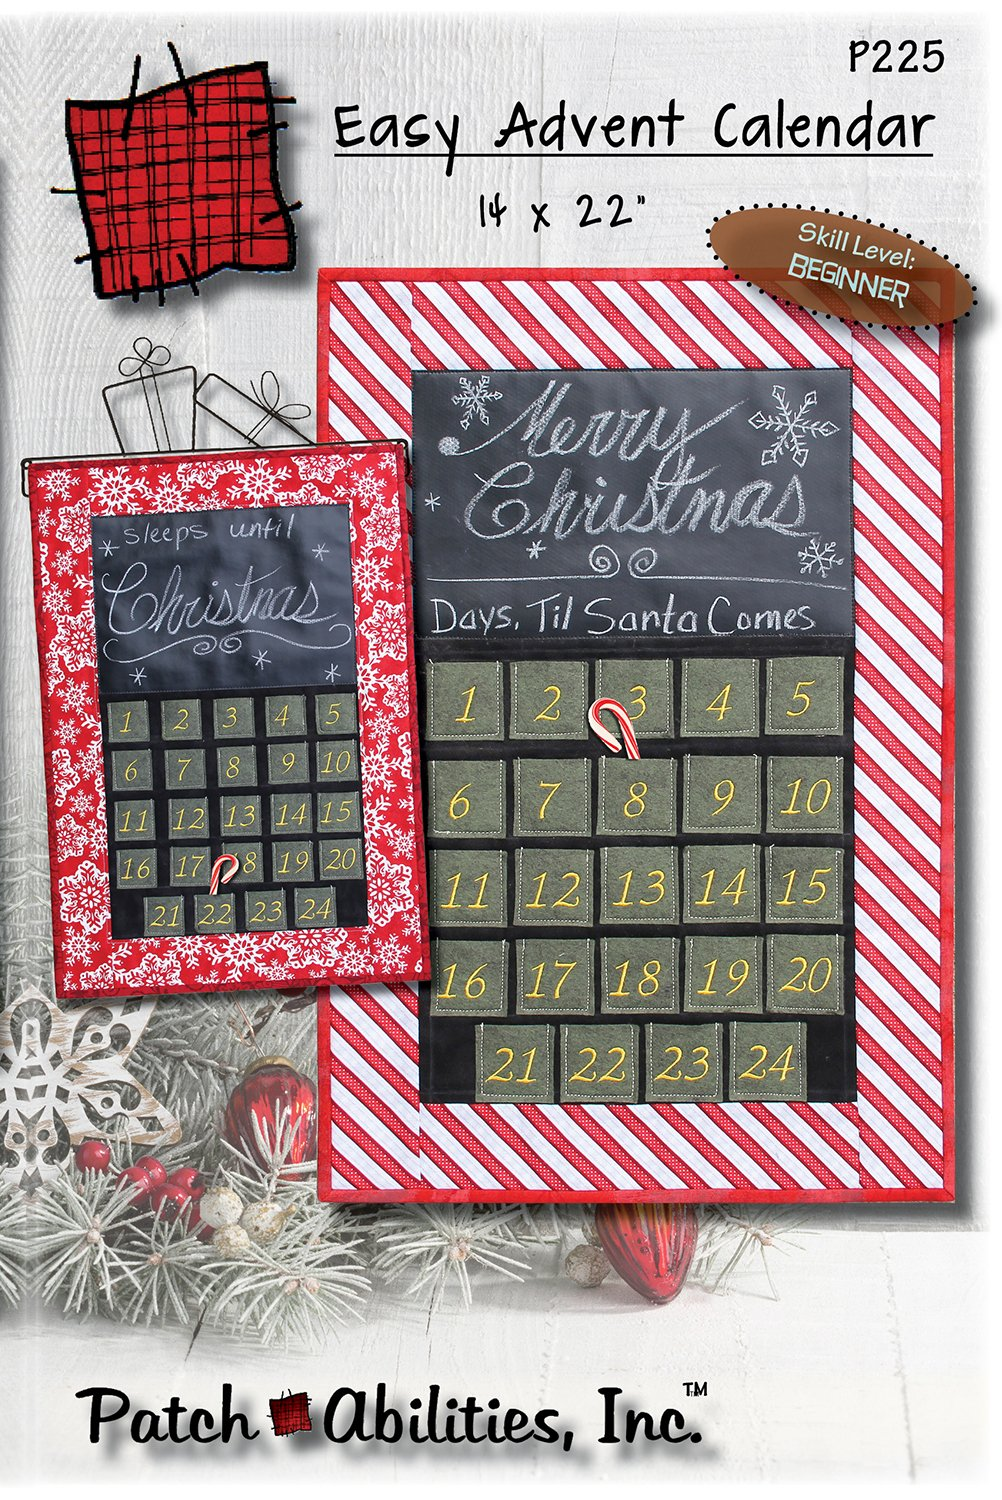 P225 Easy Advent Calendar